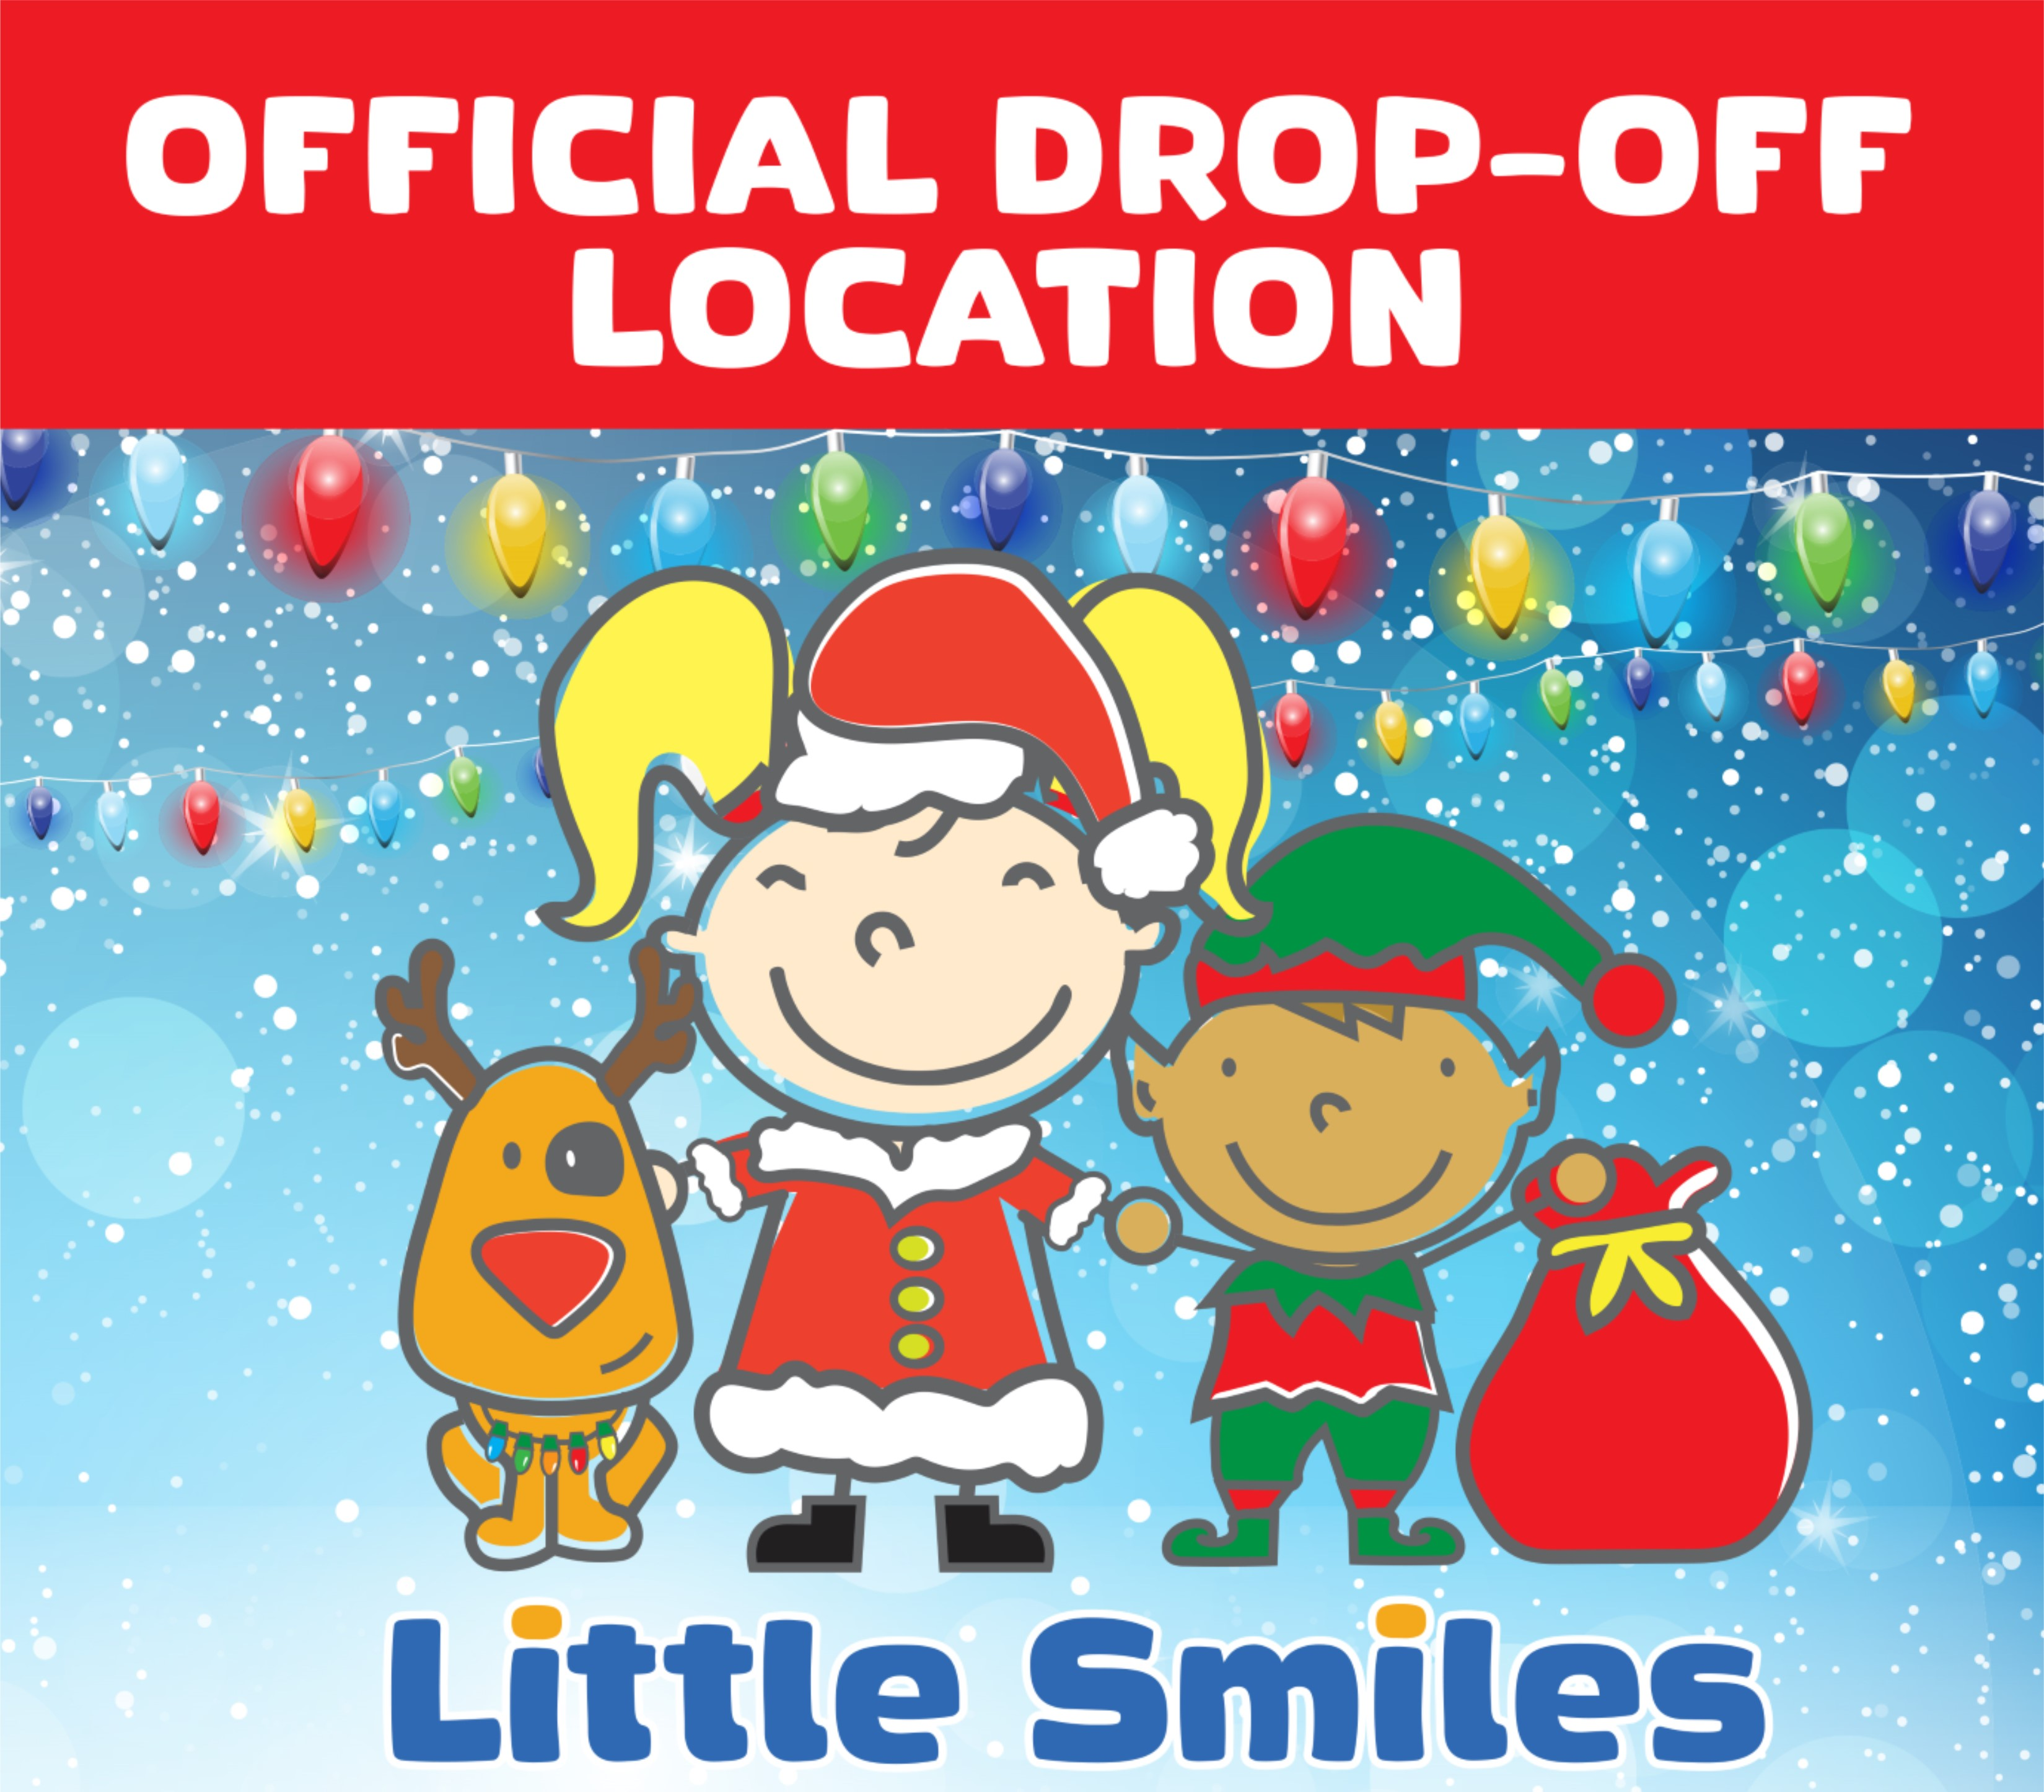 Little Smiles Toy Drive